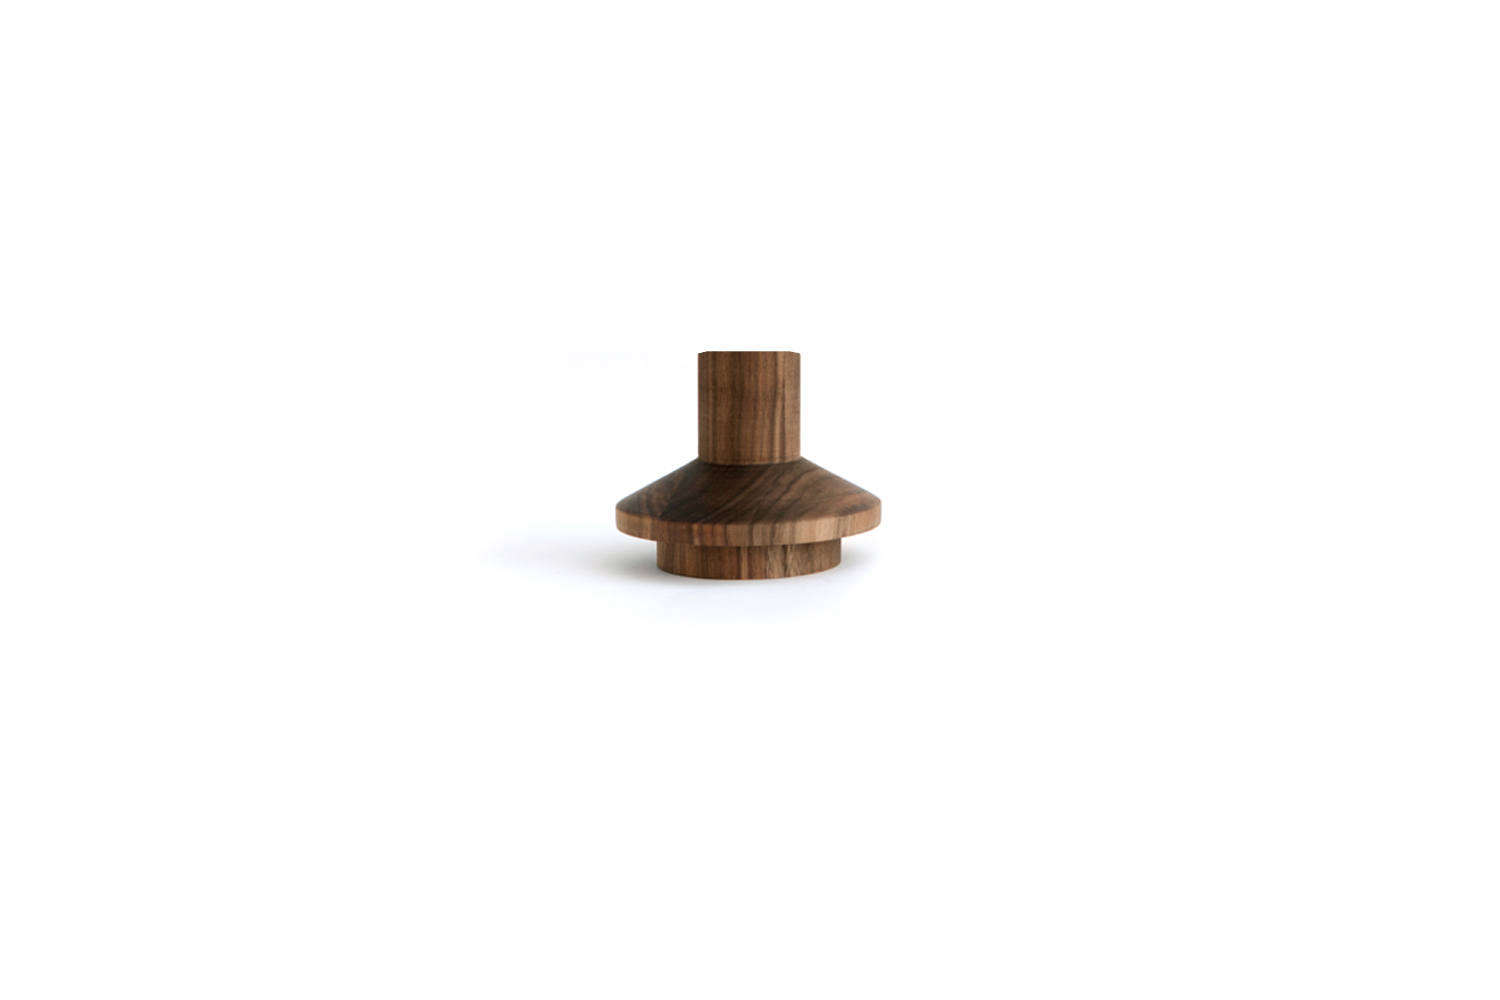 the michaël verheydenlighthouse candle holder in walnut is available in the  27